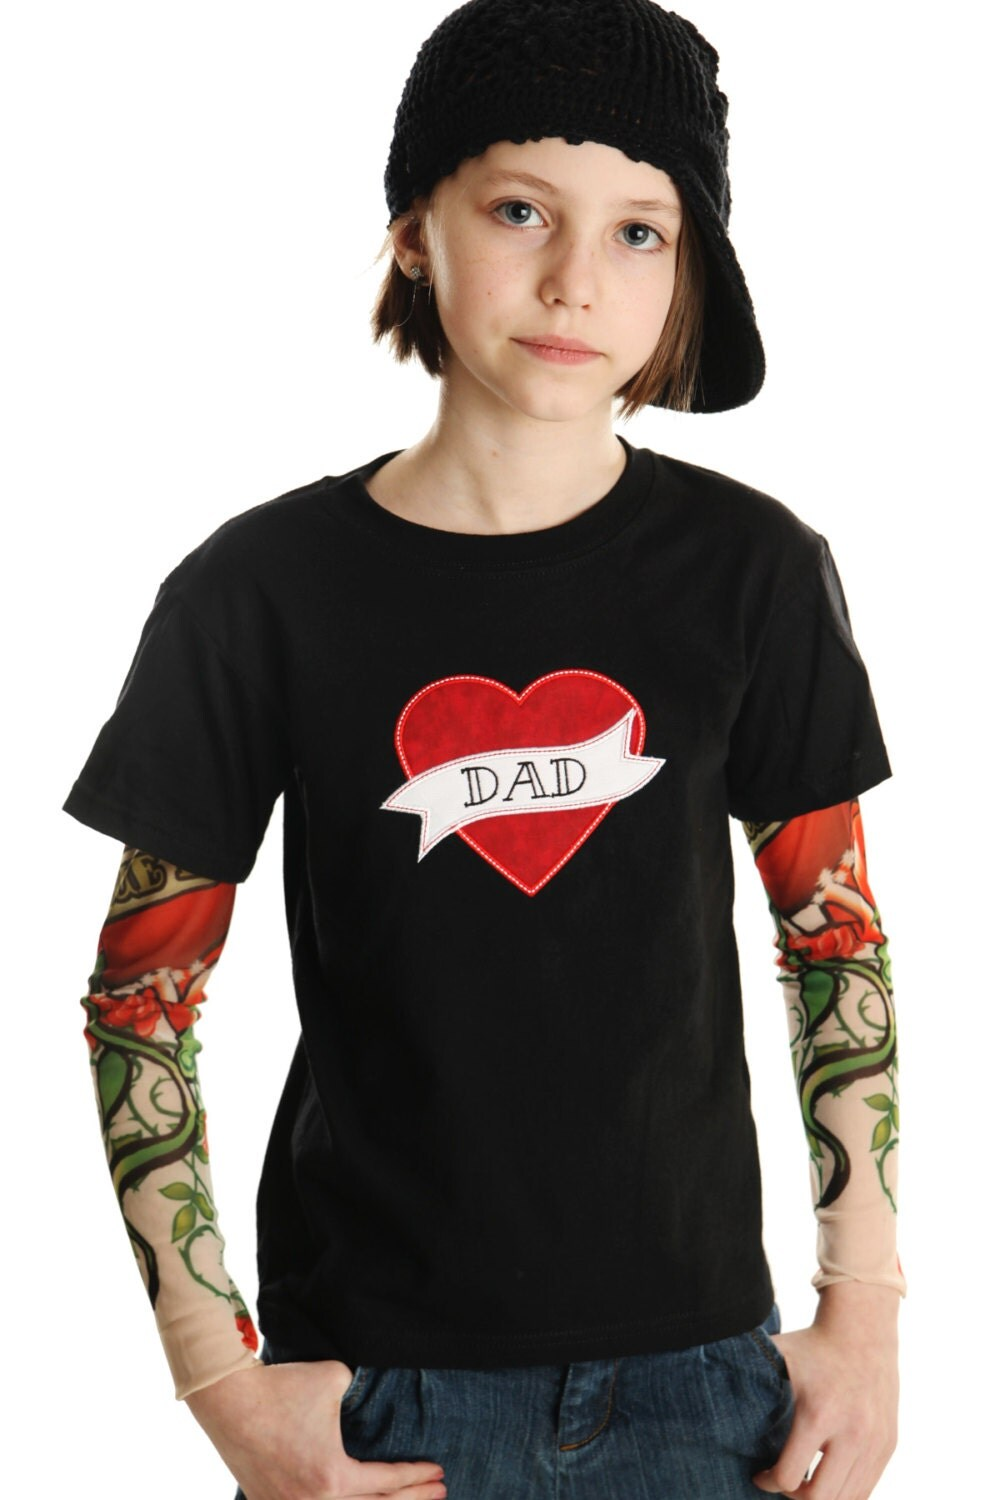 Shirt Sleeve Tattoo: Tattoo Sleeve T Shirt With Mom Or Dad Heart Applique For Boys